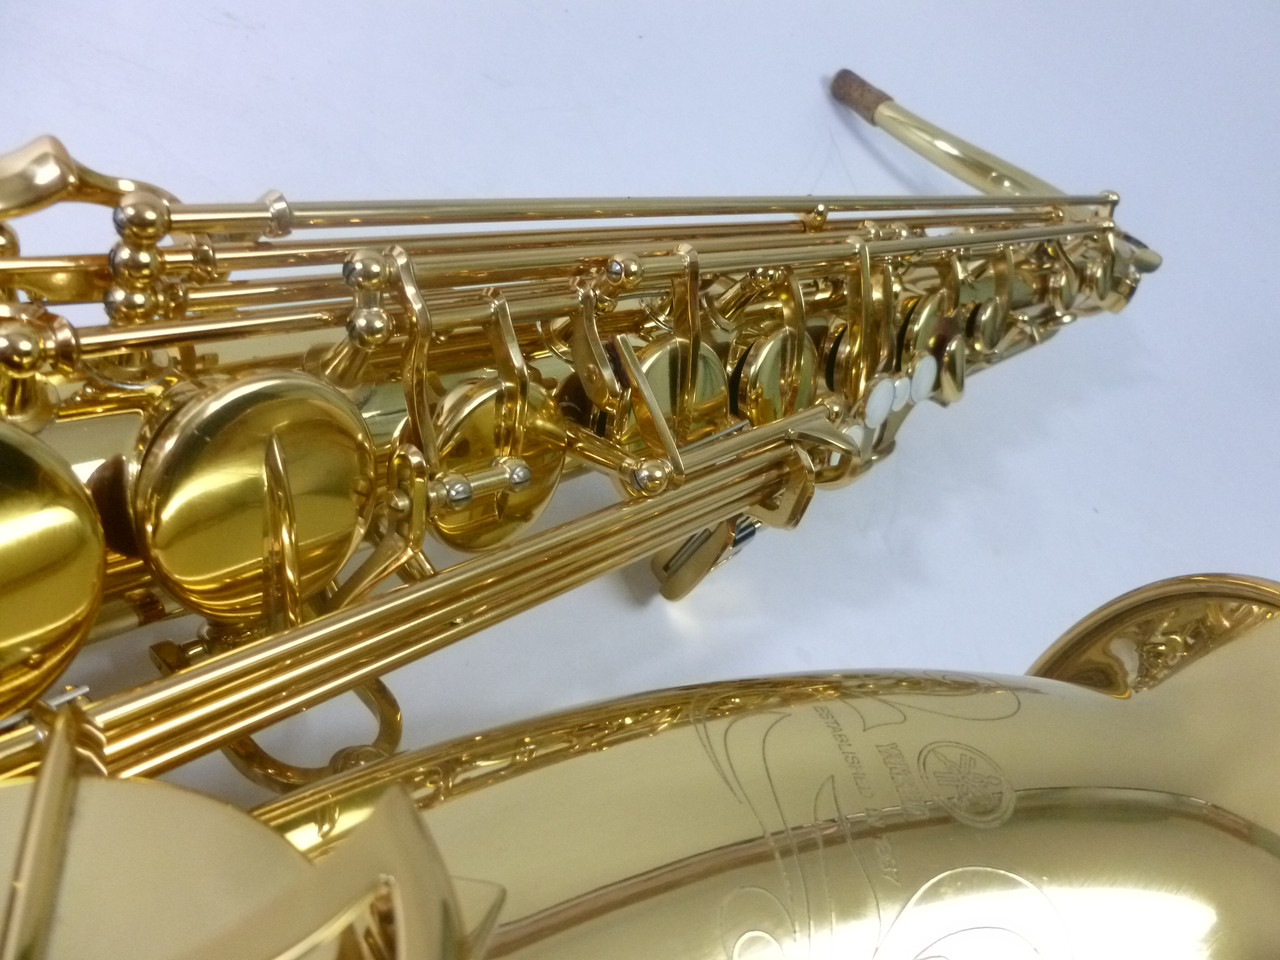 YAMAHA YTS 475 TENOR SAX (MADE IN JAPAN) - REFURBISHED 10